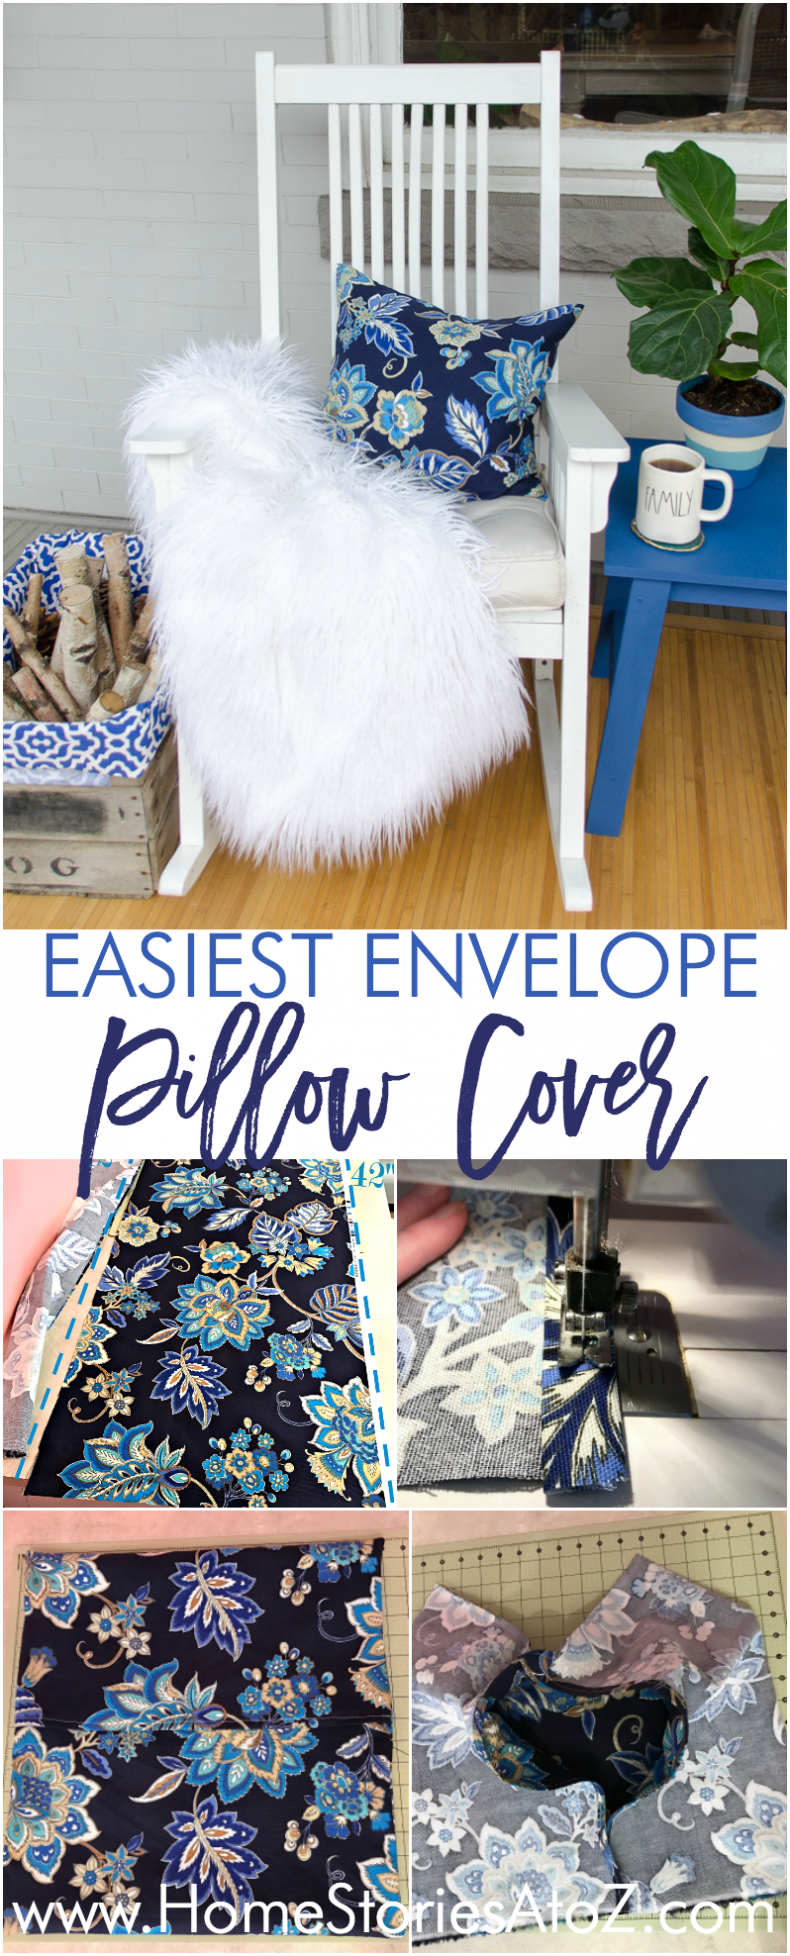 Easy One Piece Fabric Envelope Pillow Cover Tutorial